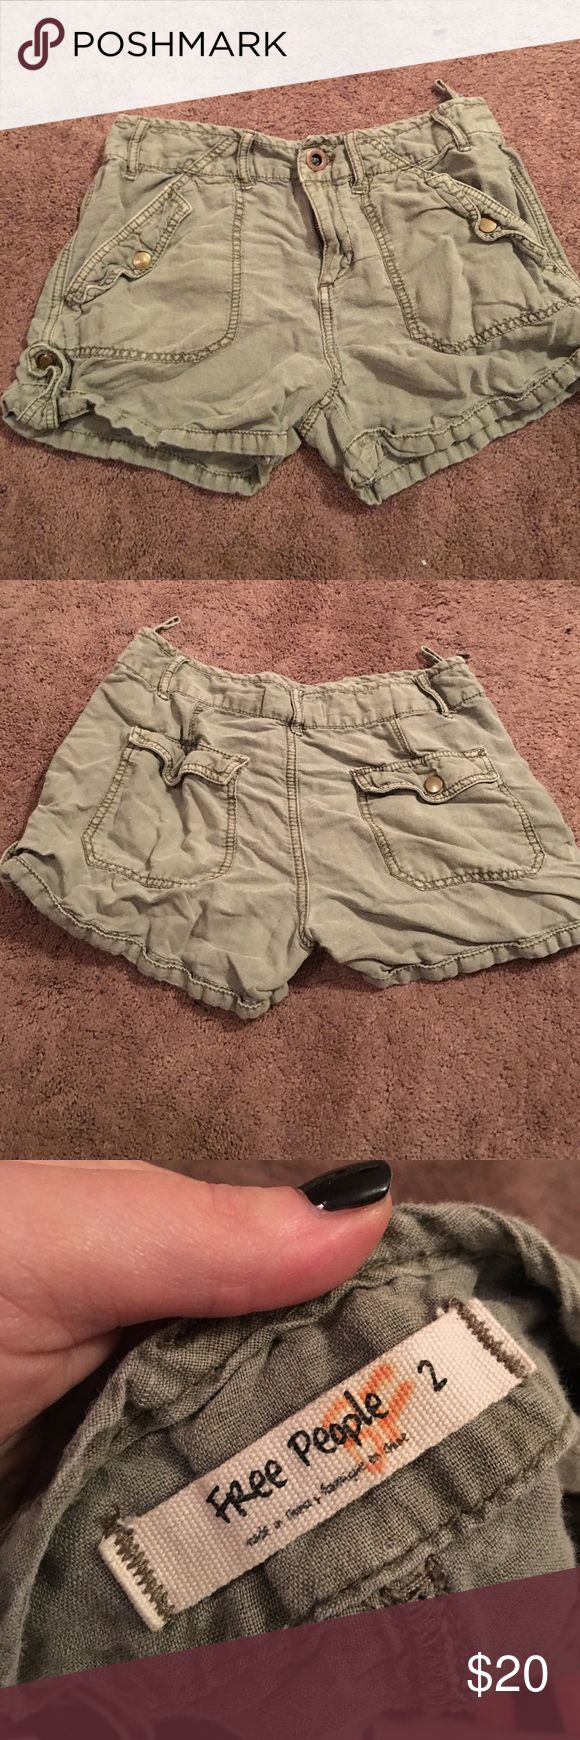 💕VDAY SALE💕Free People army shorts In great condition. Linen and cotton material. Free People Shorts